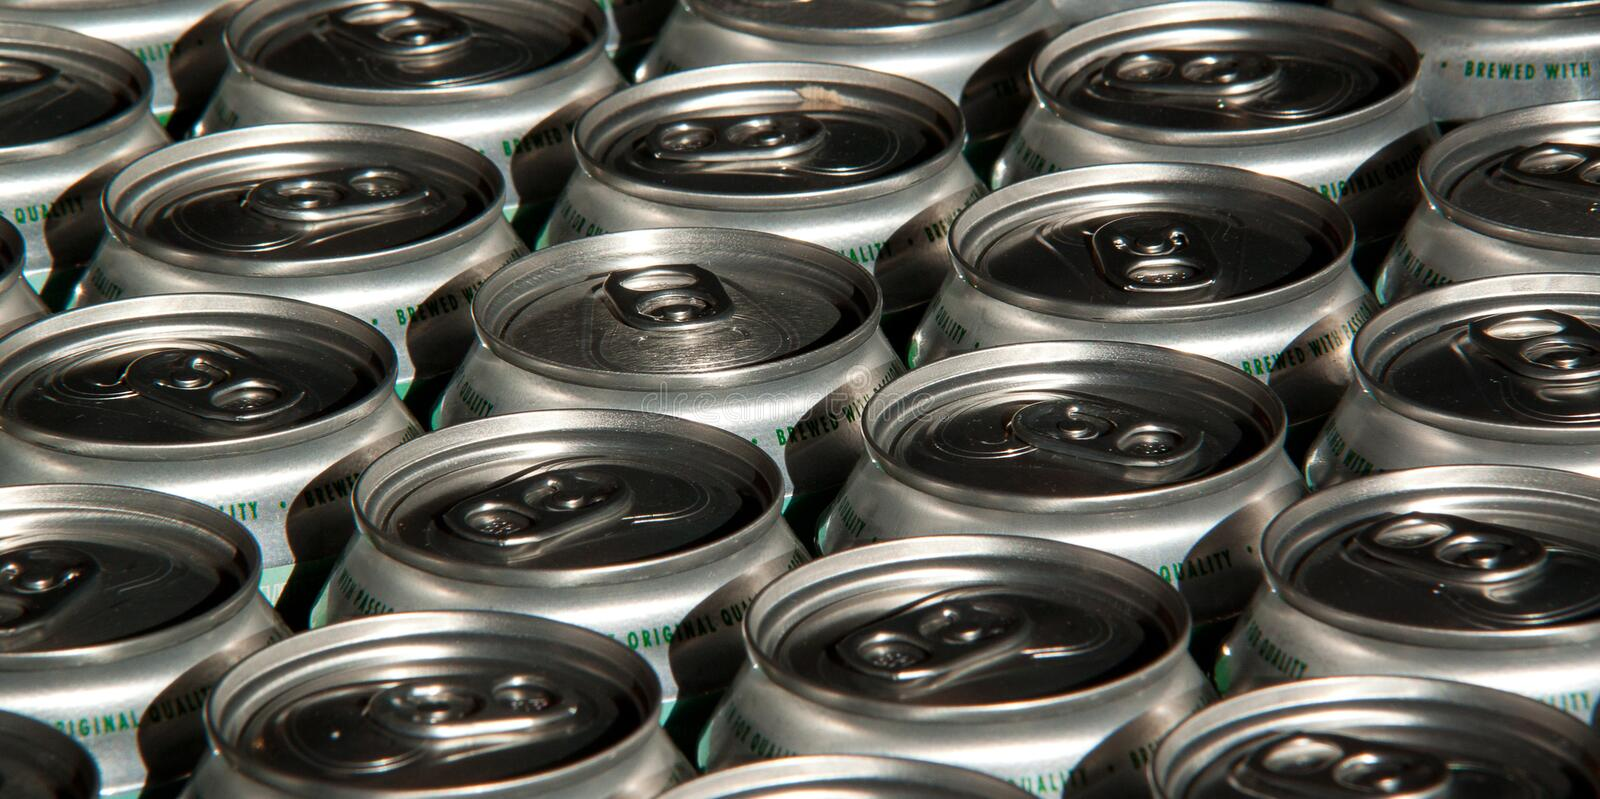 Tin cans with water, beer. Several tin cans with water or booze densely standing in the package stock photos